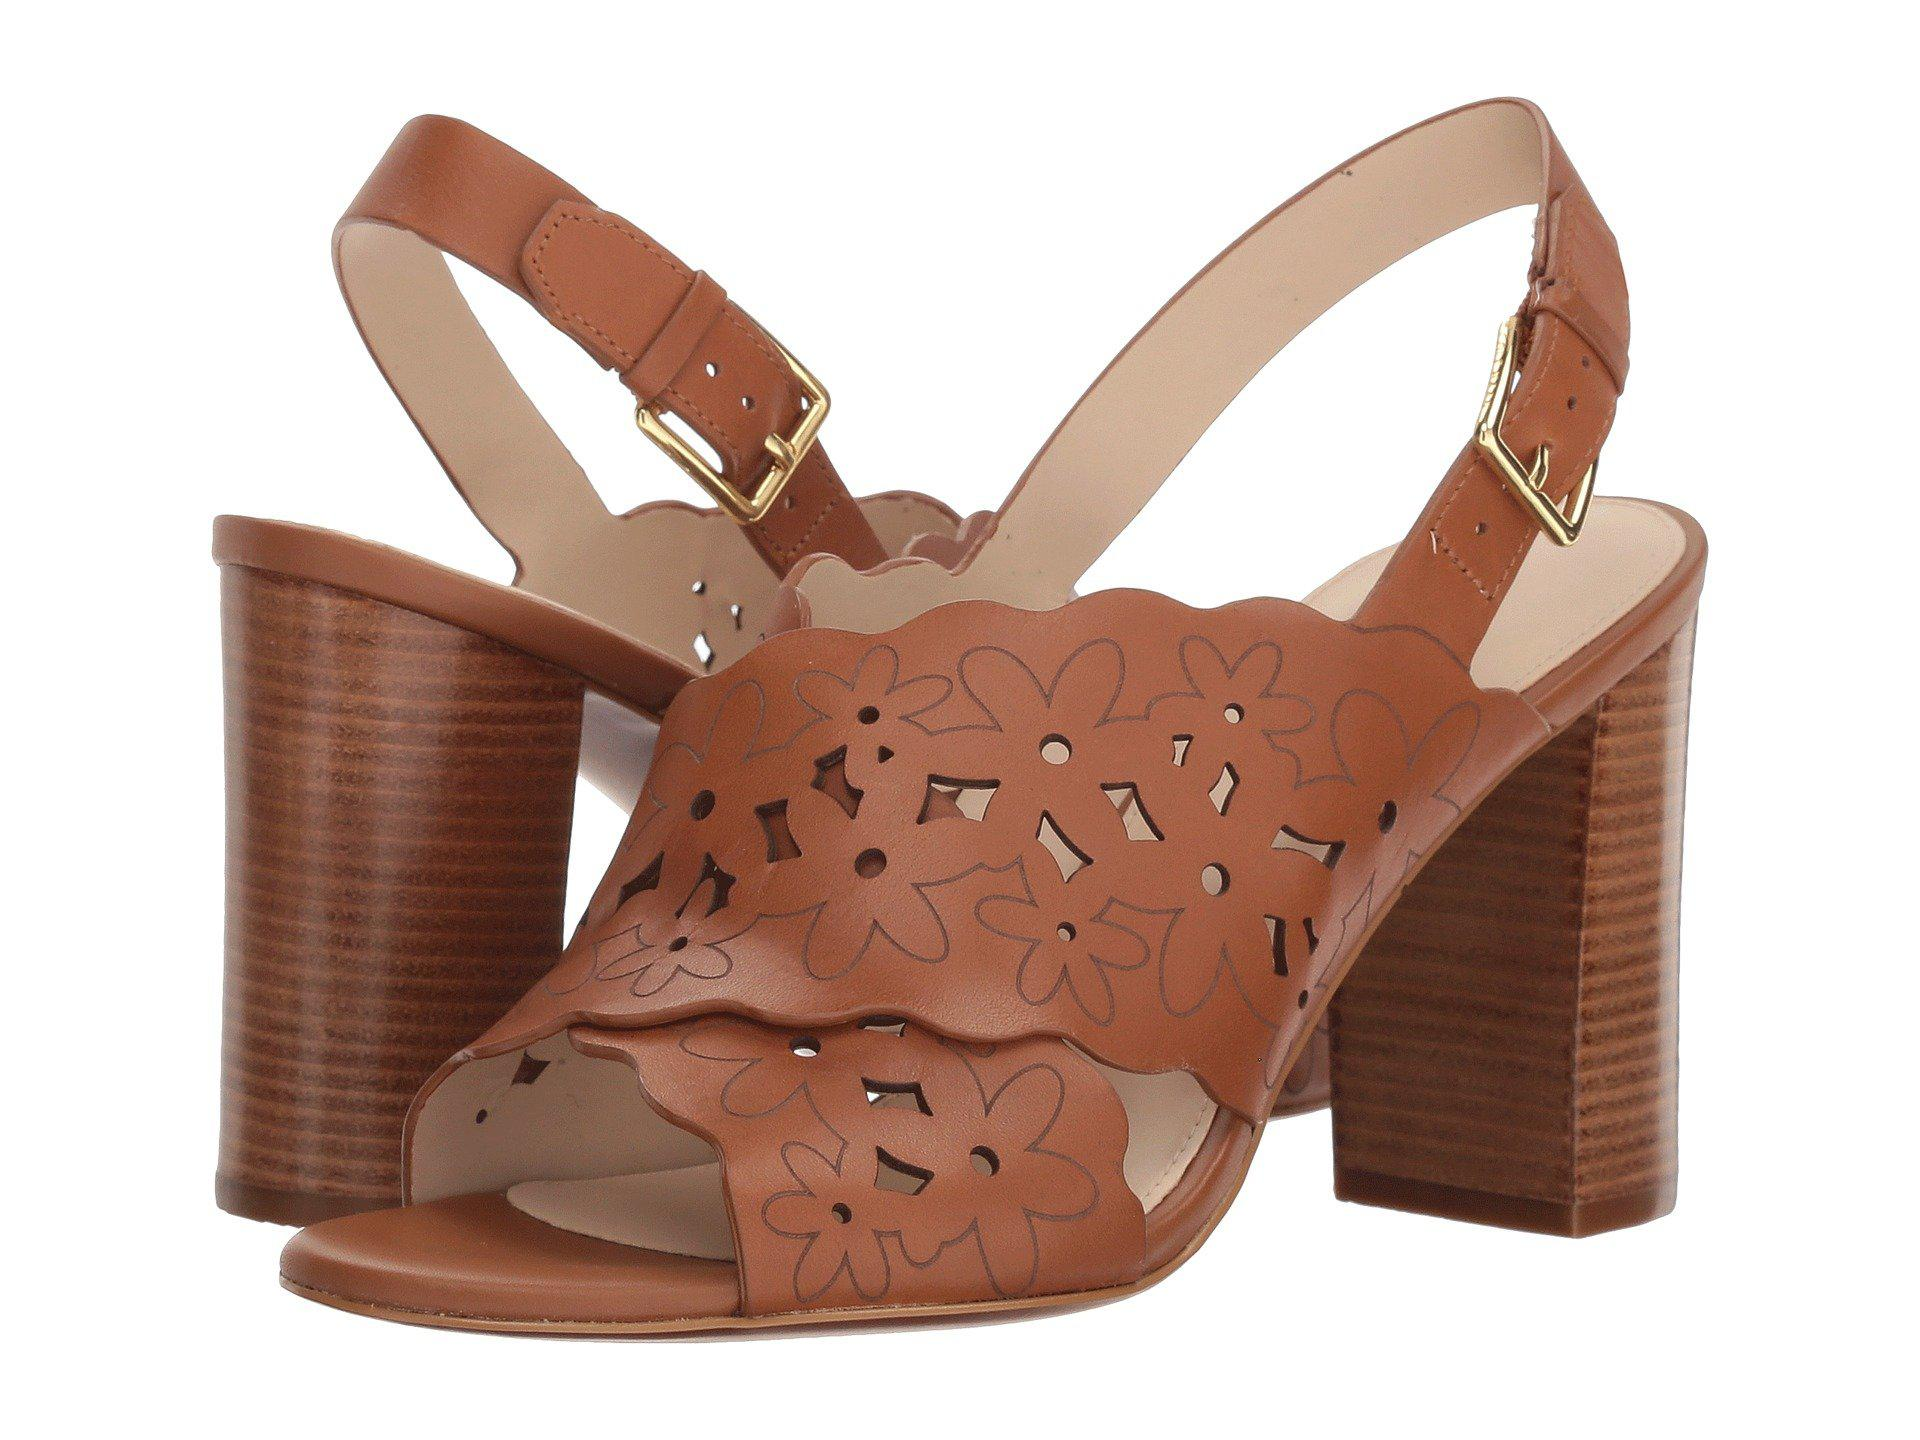 Cole Haan Indra High Floral Sandal II